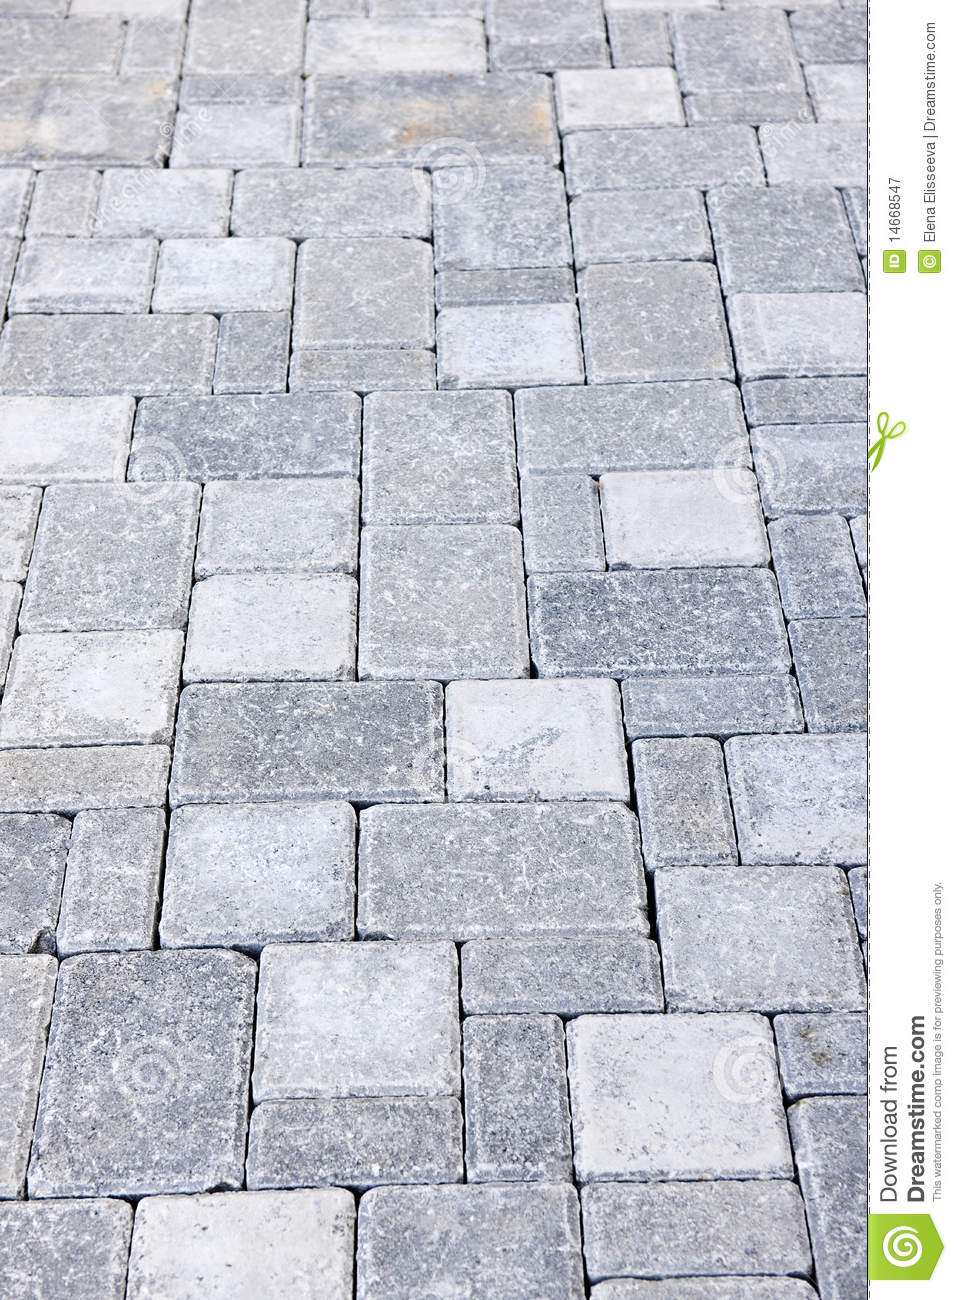 Stone Exterior Siding Cobble Stone Traditional Exterior Chicago furthermore A16f0020cf9e2bdb Silver Travertine Ledgestone Fireplace moreover Modern Swimming Pools 8081133331 further Pachysandra Terminalis together with Concept Designs Pmq. on stone bathroom design ideas